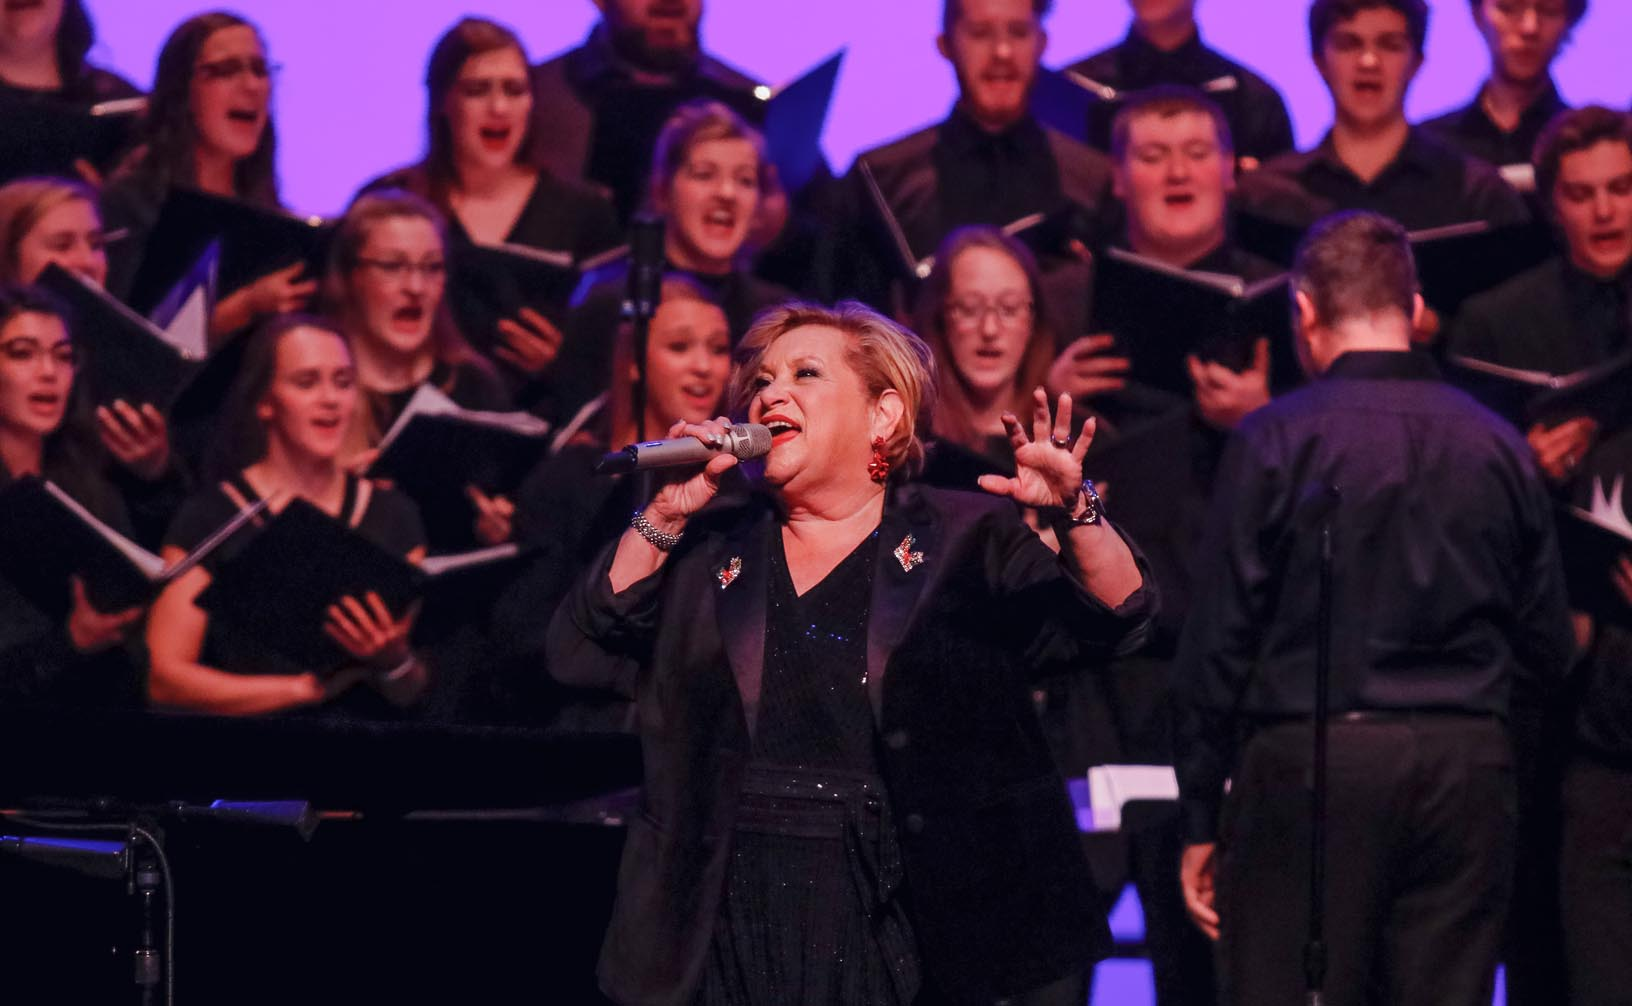 UNK's Choraleers perform with Sandi Patty during a December concert at the Merryman Performing Arts Center in Kearney. (Photo by Paul Pack, UNK Communications)